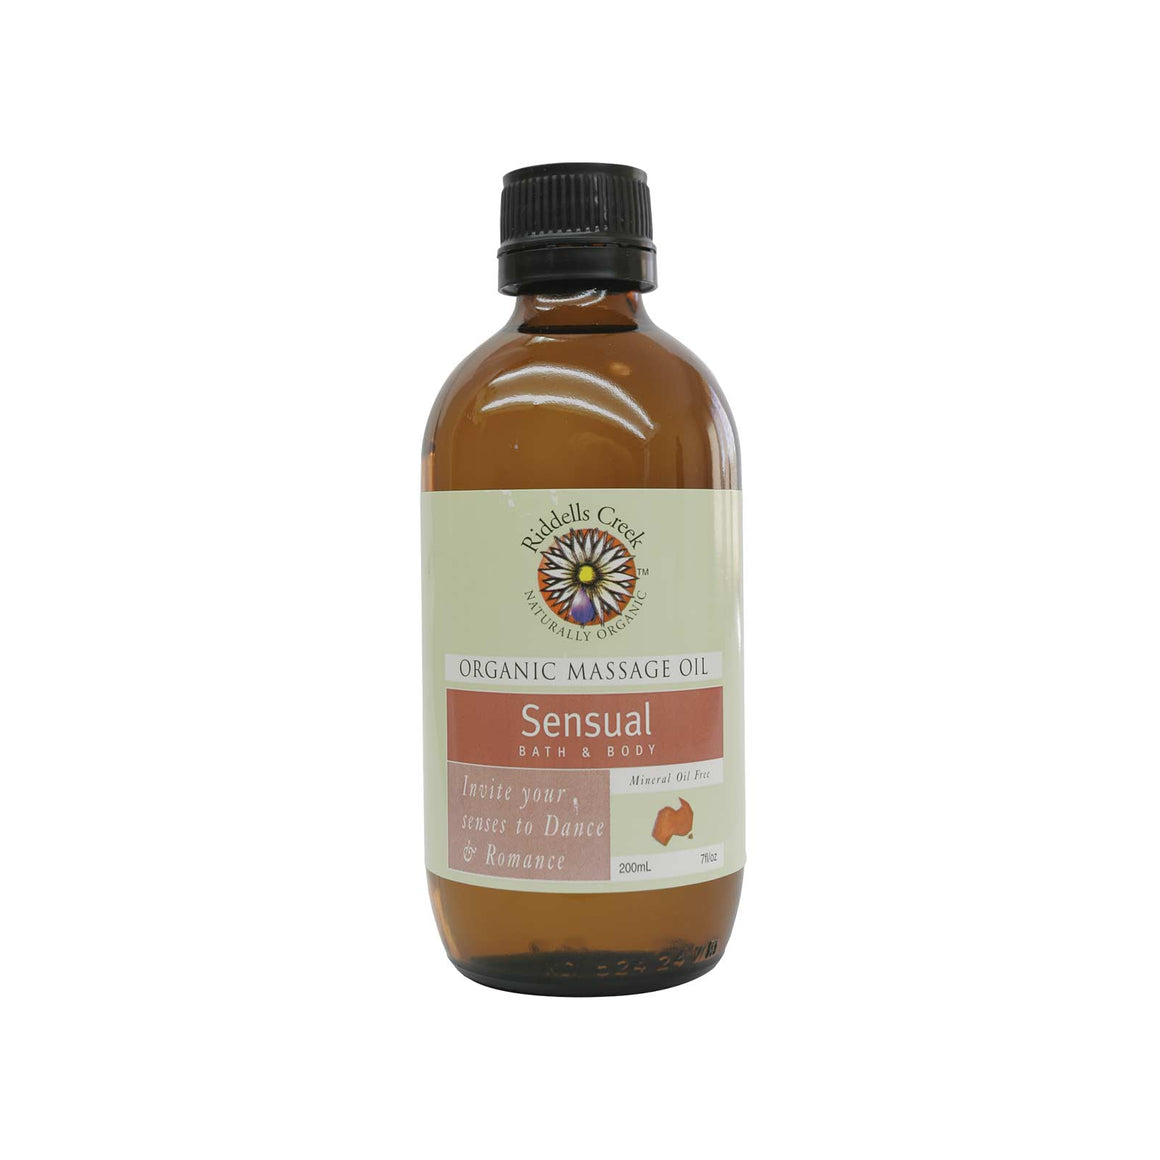 Riddells Creek Massage Oil Sensual-200ml